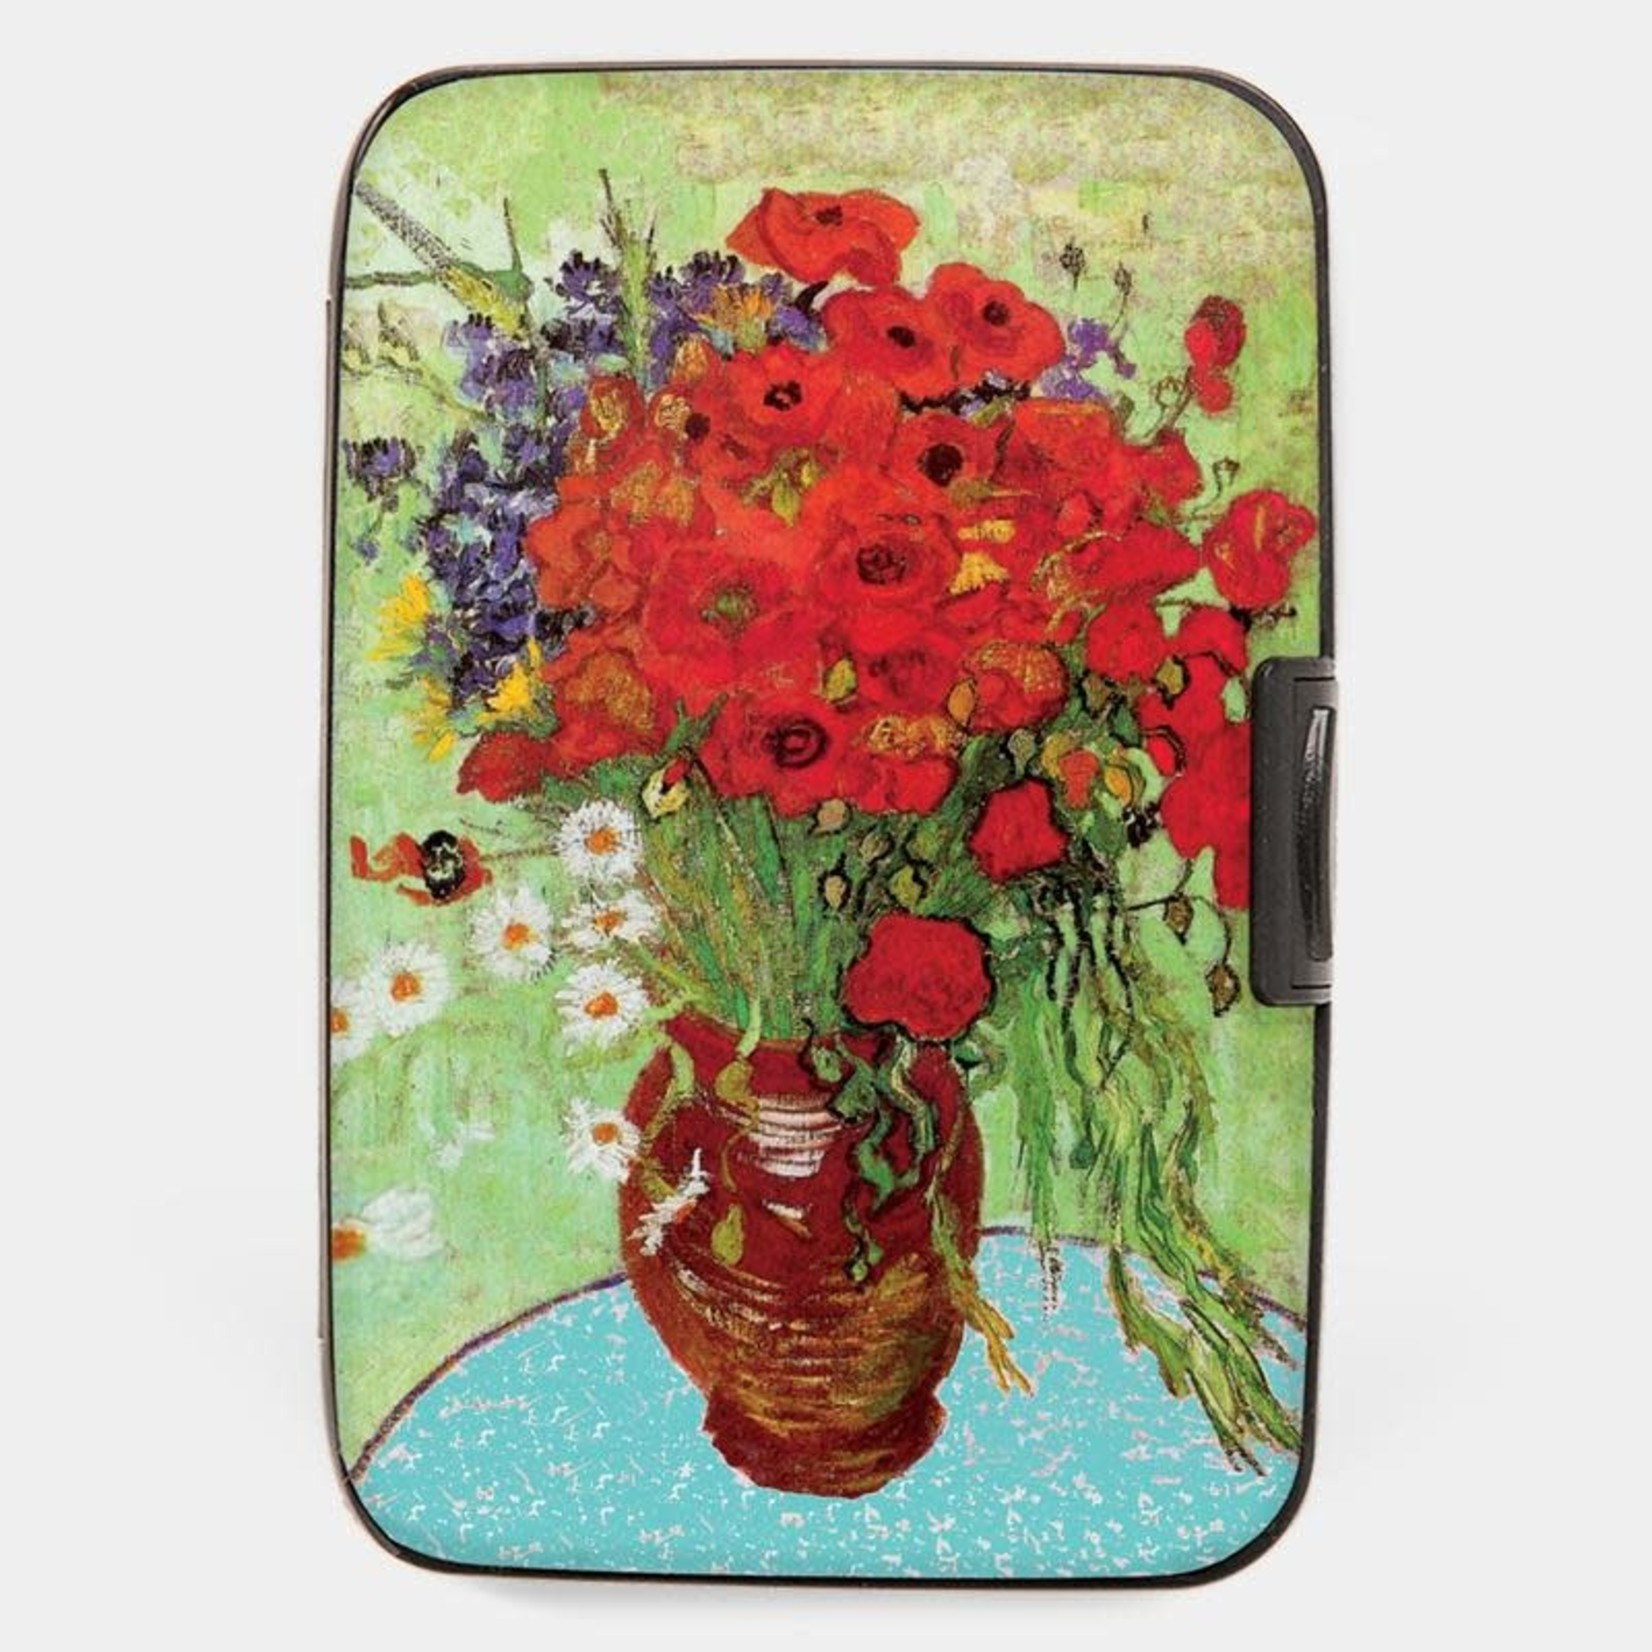 Monarque Armored Wallet - Van Gogh - Daisies and Poppies